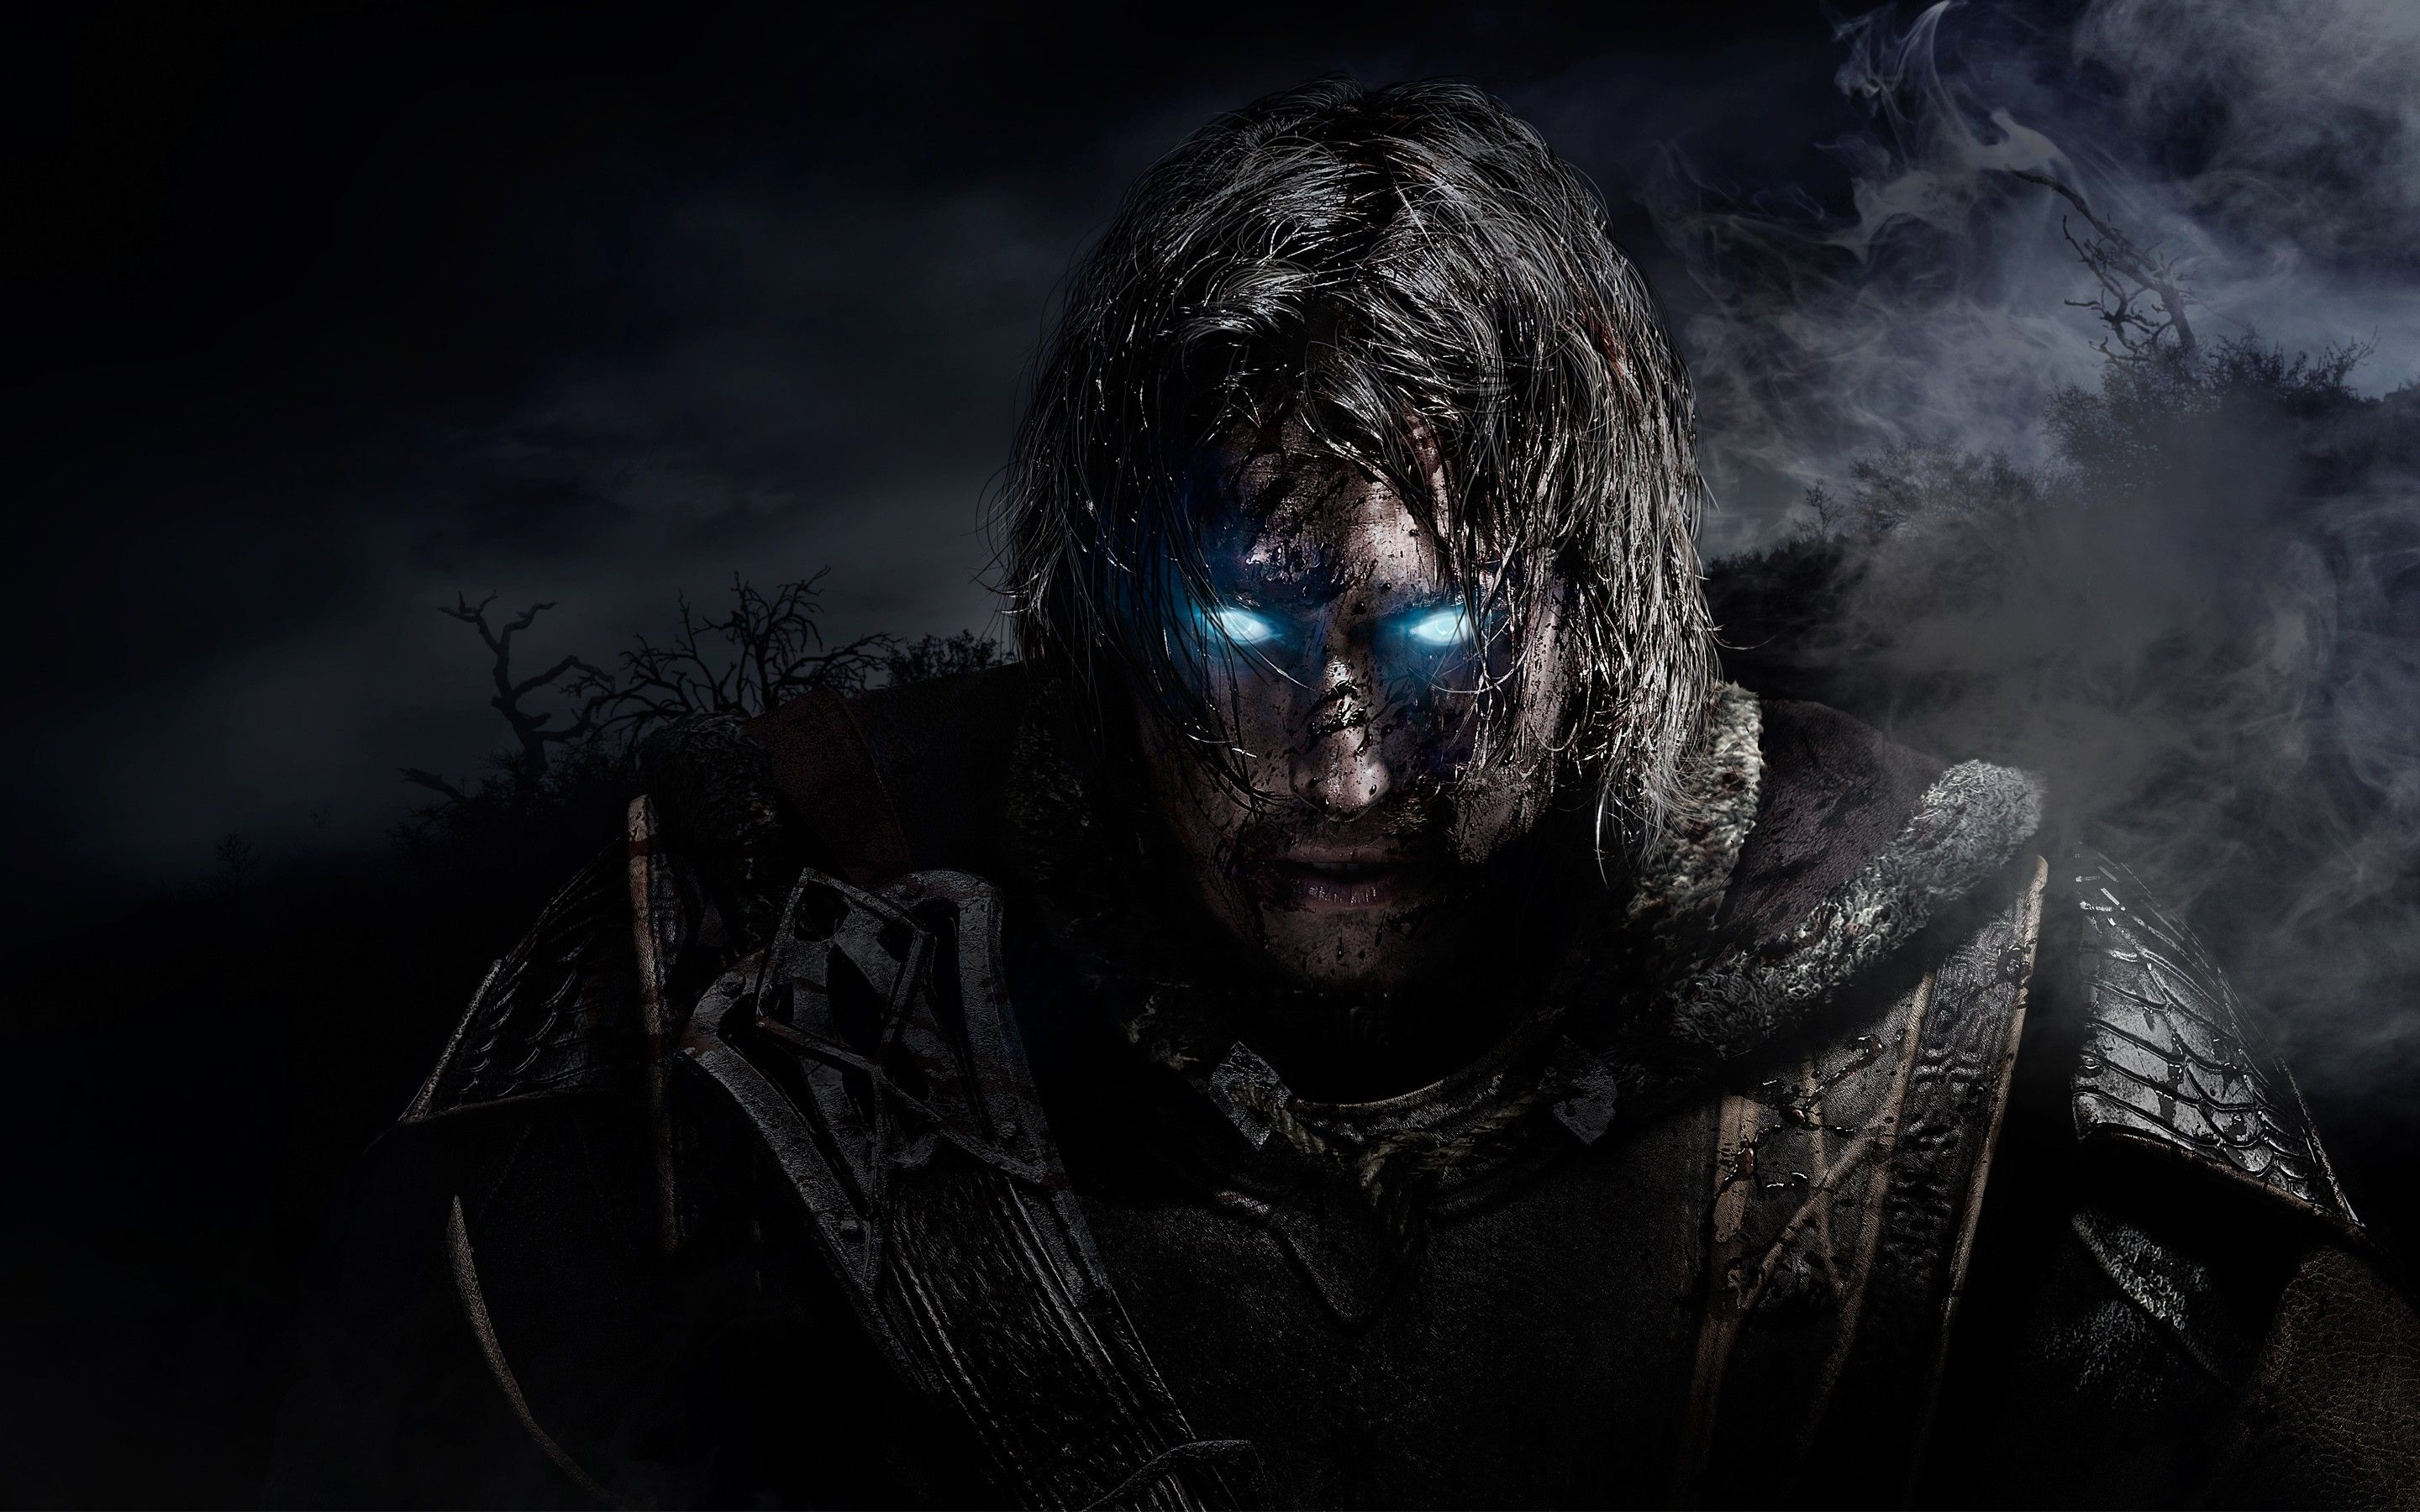 Gaming 4k Ultra Hd Desktop Computer Wallpaper Imgpile For Gaming 4k Wallpaper Shadow Of Mordor Middle Earth Shadow Dark Souls Wallpaper